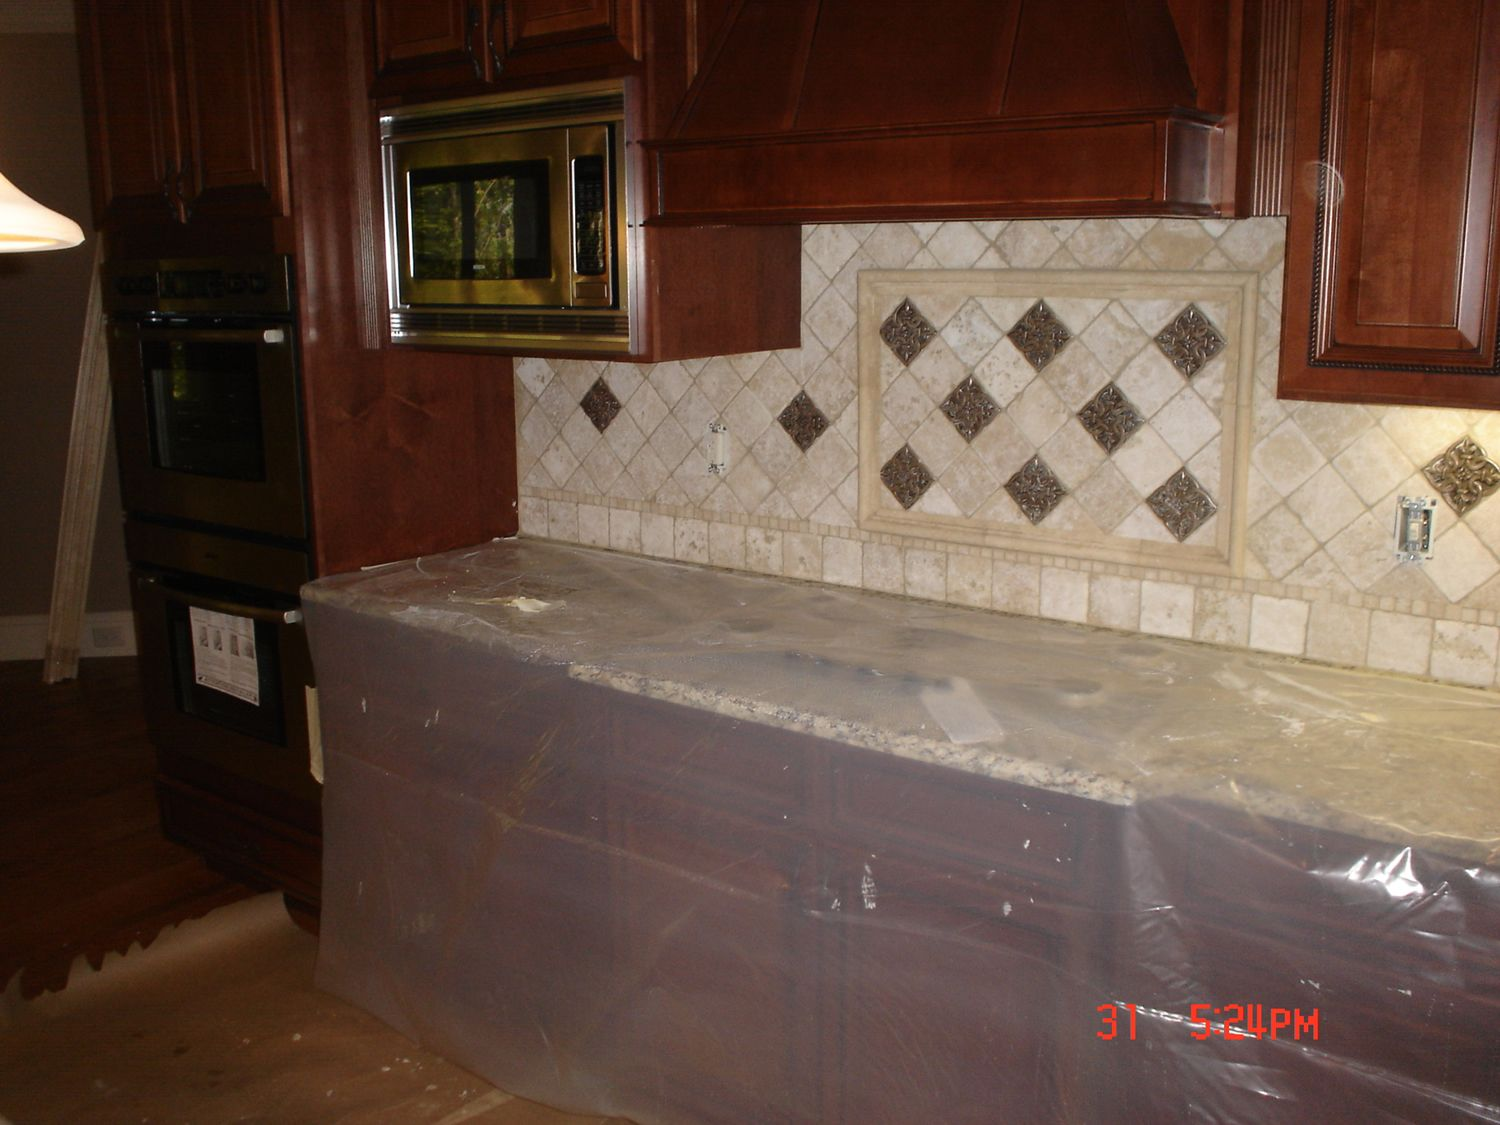 Kitchen travertine tile backsplash ideas kitchen tile Best kitchen tiles ideas